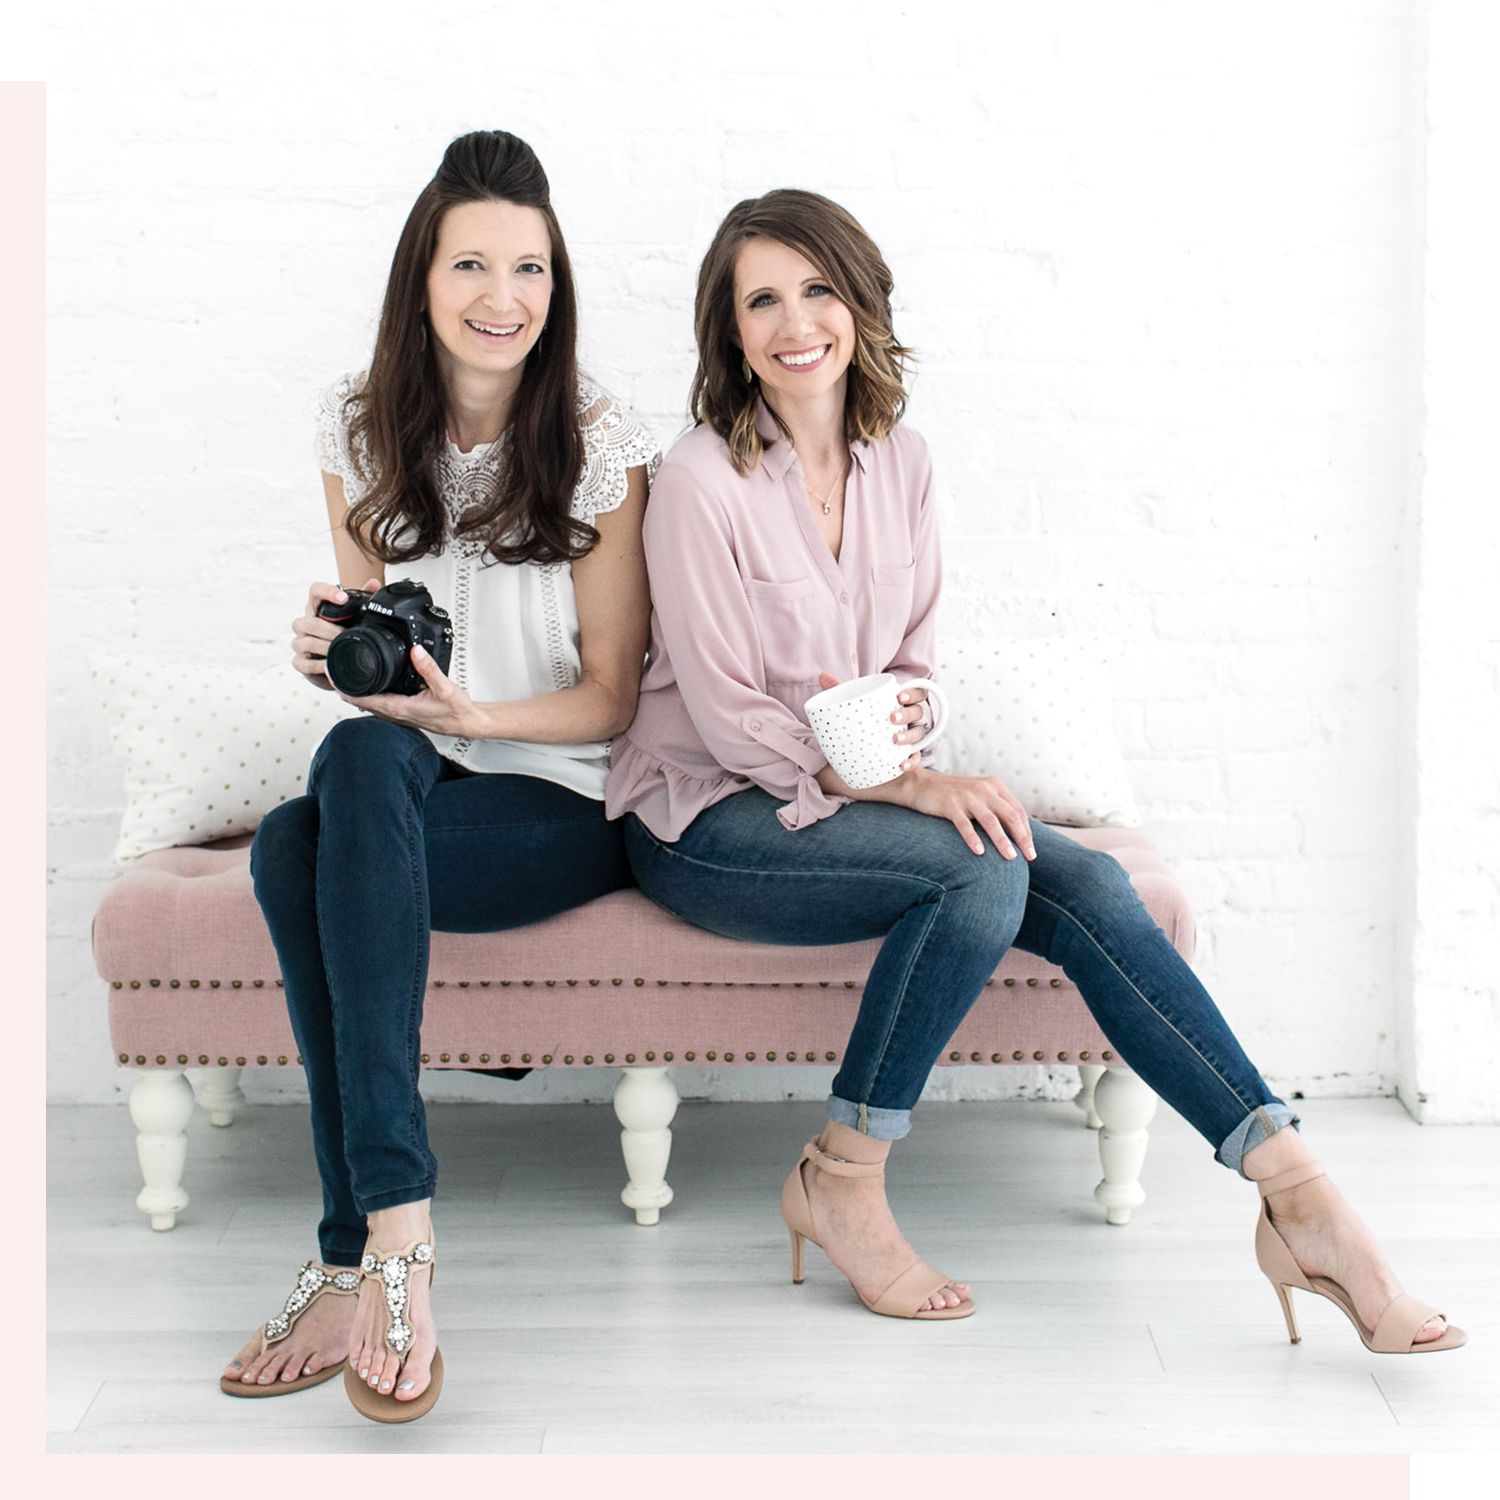 Corrie Barto and Jennie Newsome own Stock Love Studio, creating mockups and custom stock photography.